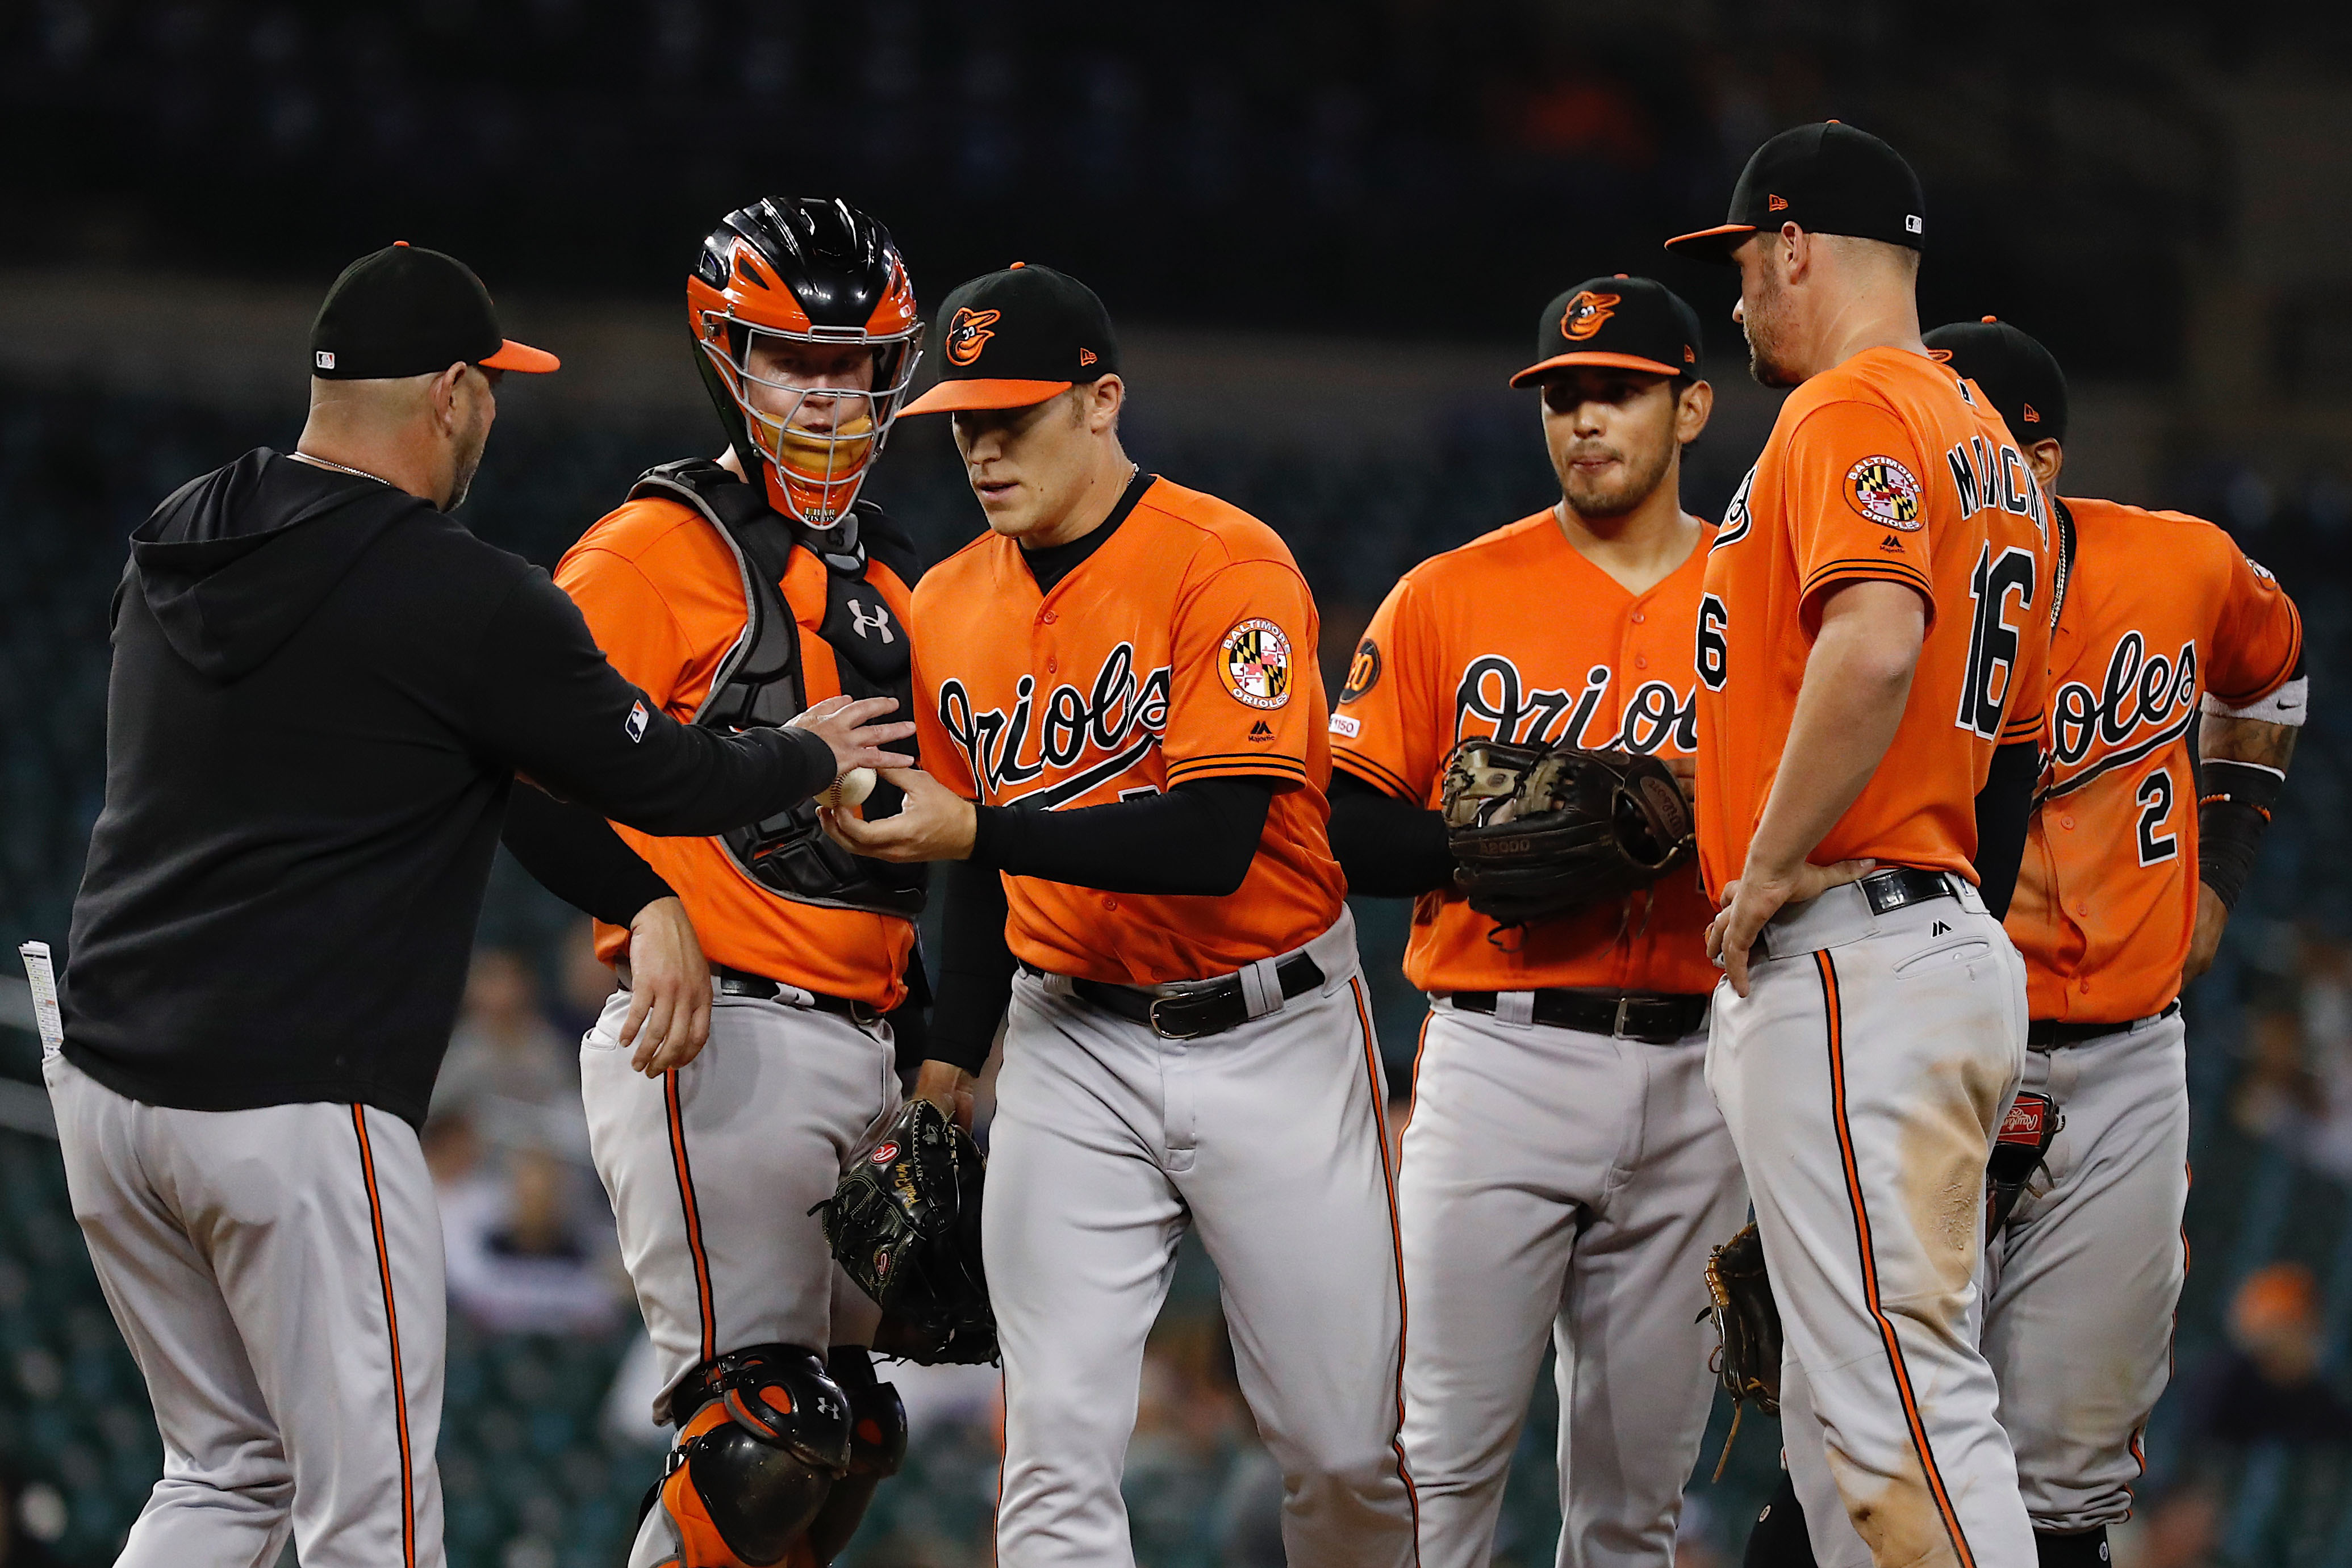 MLB: Baltimore Orioles at Detroit Tigers